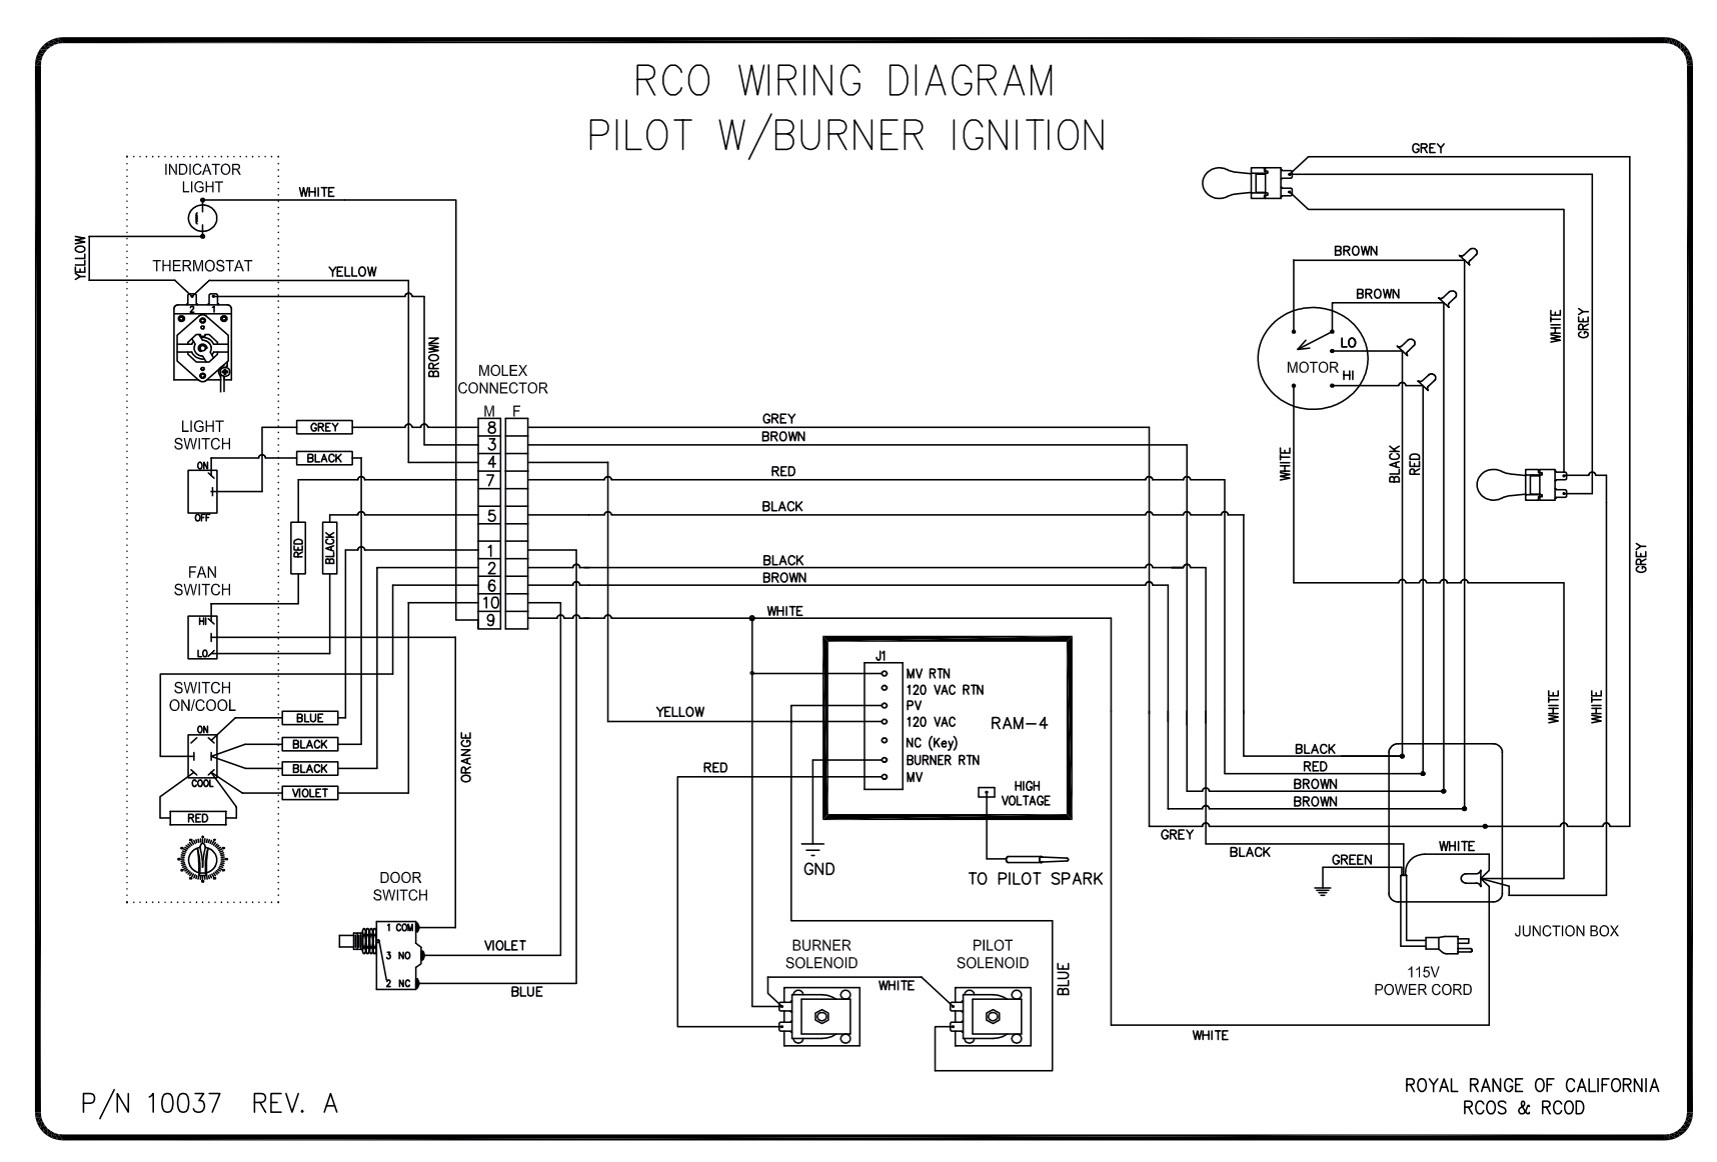 wiring diagrams royal range of california rh royalranges com webster burner wiring diagram weishaupt burner wiring diagram